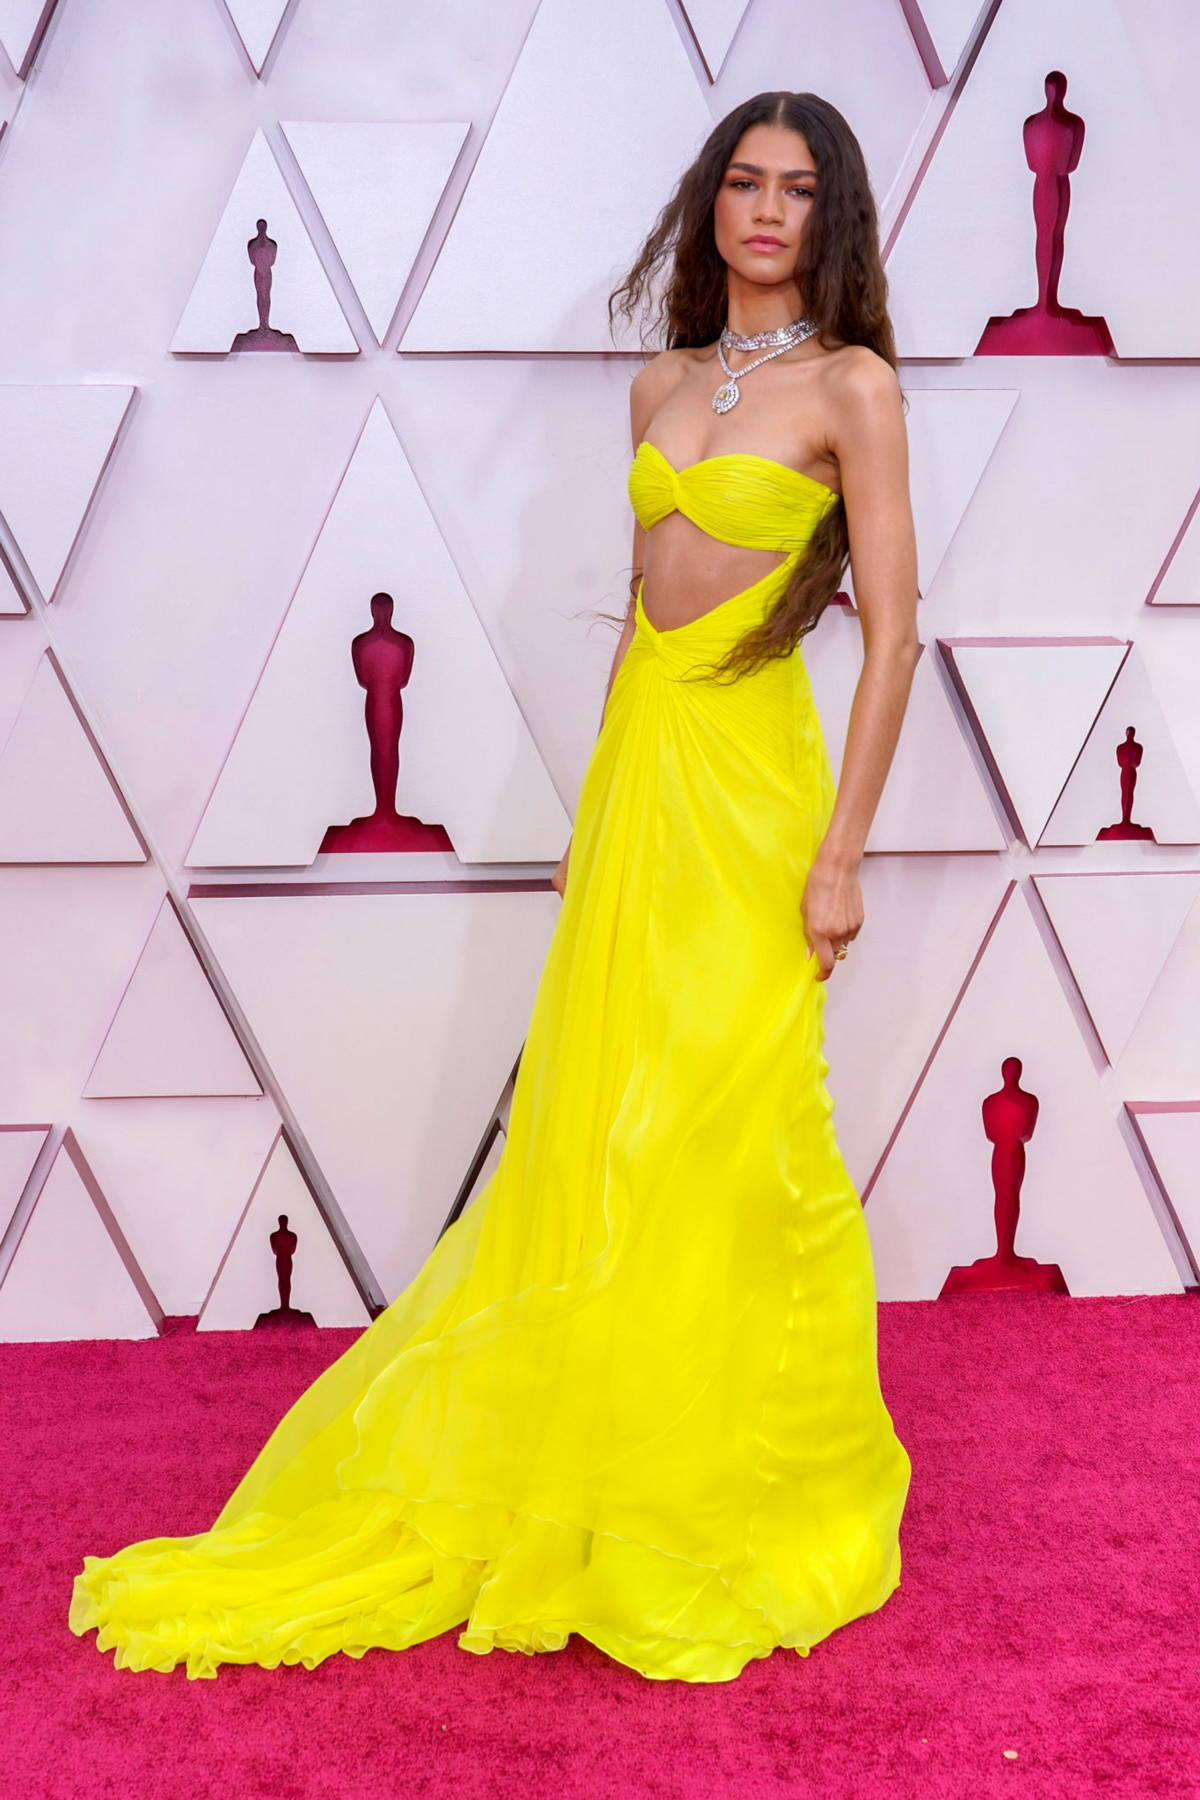 Zendaya attends the 93rd Annual Academy Awards at Union Station in Los Angeles